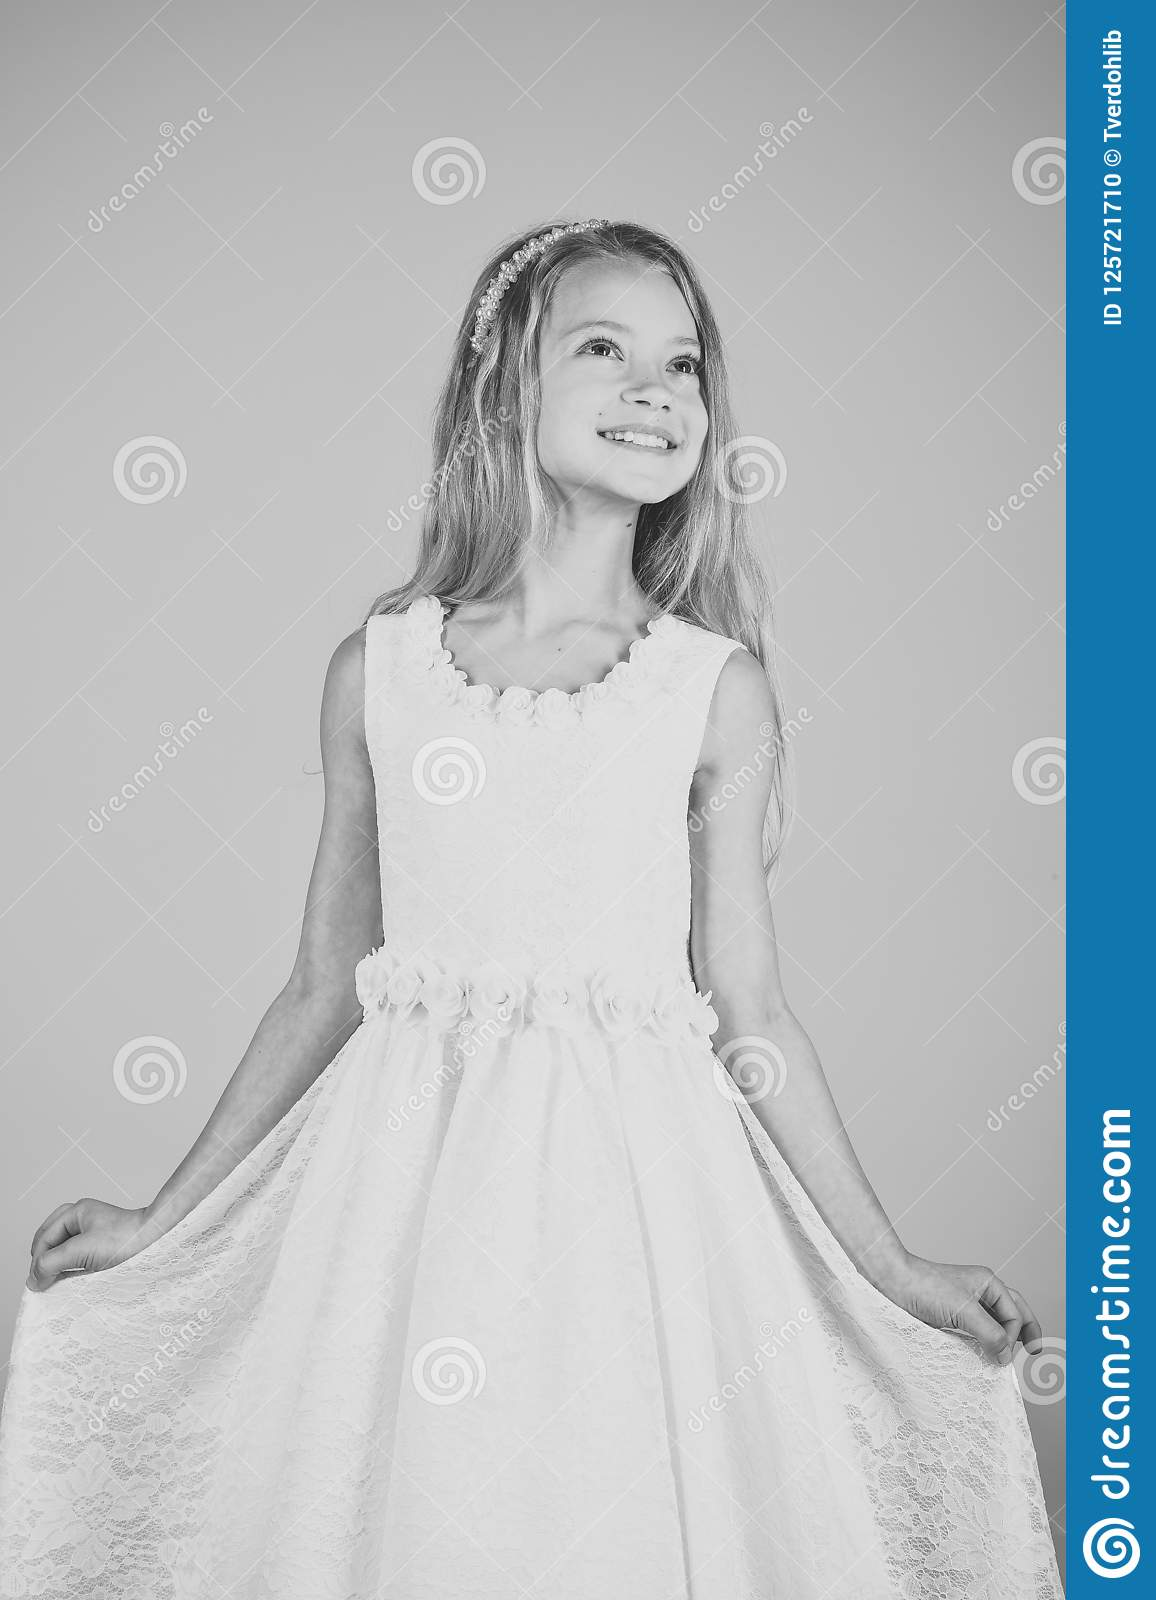 3a69e0407 Cute little baby girl fashion pretty model blonde curly lady hair funny  child birthday party fun